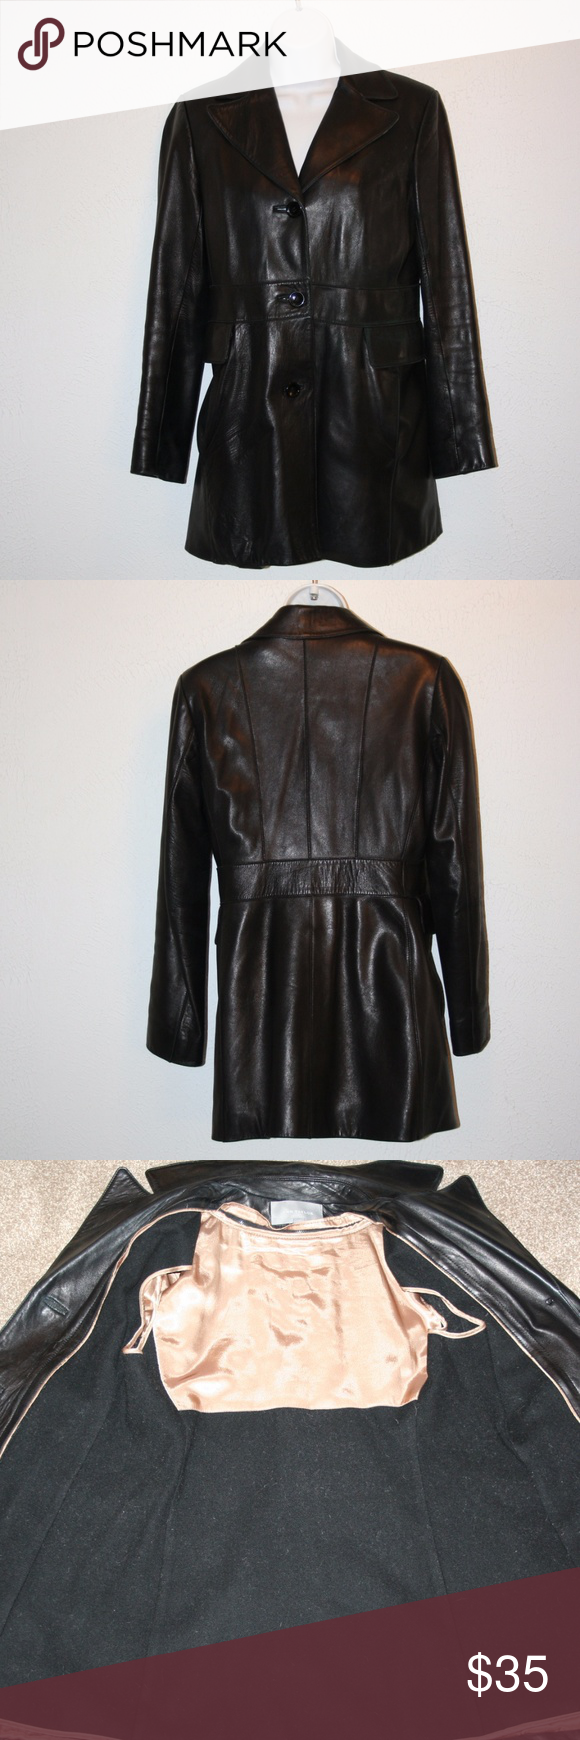 """ANN TAYLOR Black Leather Jacket Coat Sz 2 C: 37"""" Ann Taylor  Good Condition  NOTE:  There is a scruff and some light scratches on front chest and wear on front pocket, there is a hole in the lining of one of the four pockets  Jacket  Black  Four Front Pockets  Three Button Closure  Zip Out Wool Lining  Soft Feel    Chest:  37"""" (armpit to armpit, then doubled)  Waist:  34""""  Outside Sleeve Length:  23 1/2""""  Length:  32""""   Shoulder Seam to Shoulder Seam:  16""""  Shell:  100% Leather  Lining…"""